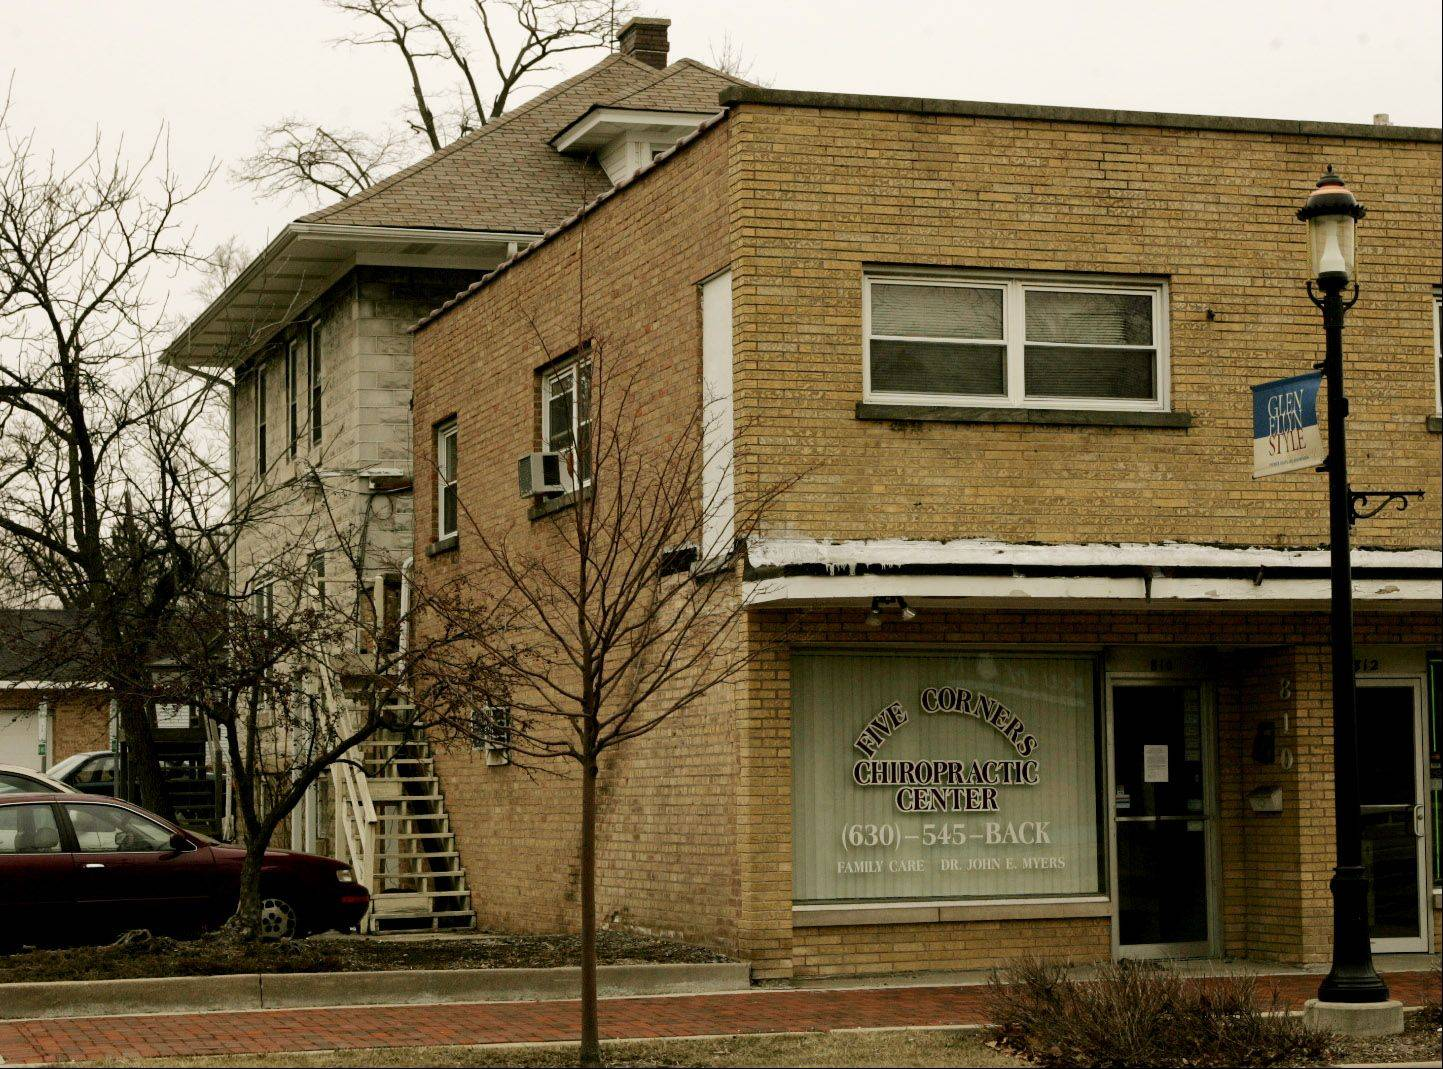 The Glen Ellyn village board has approved demolition of a century-old building at 810 N. Main St. An attached commercial storefront will be kept.